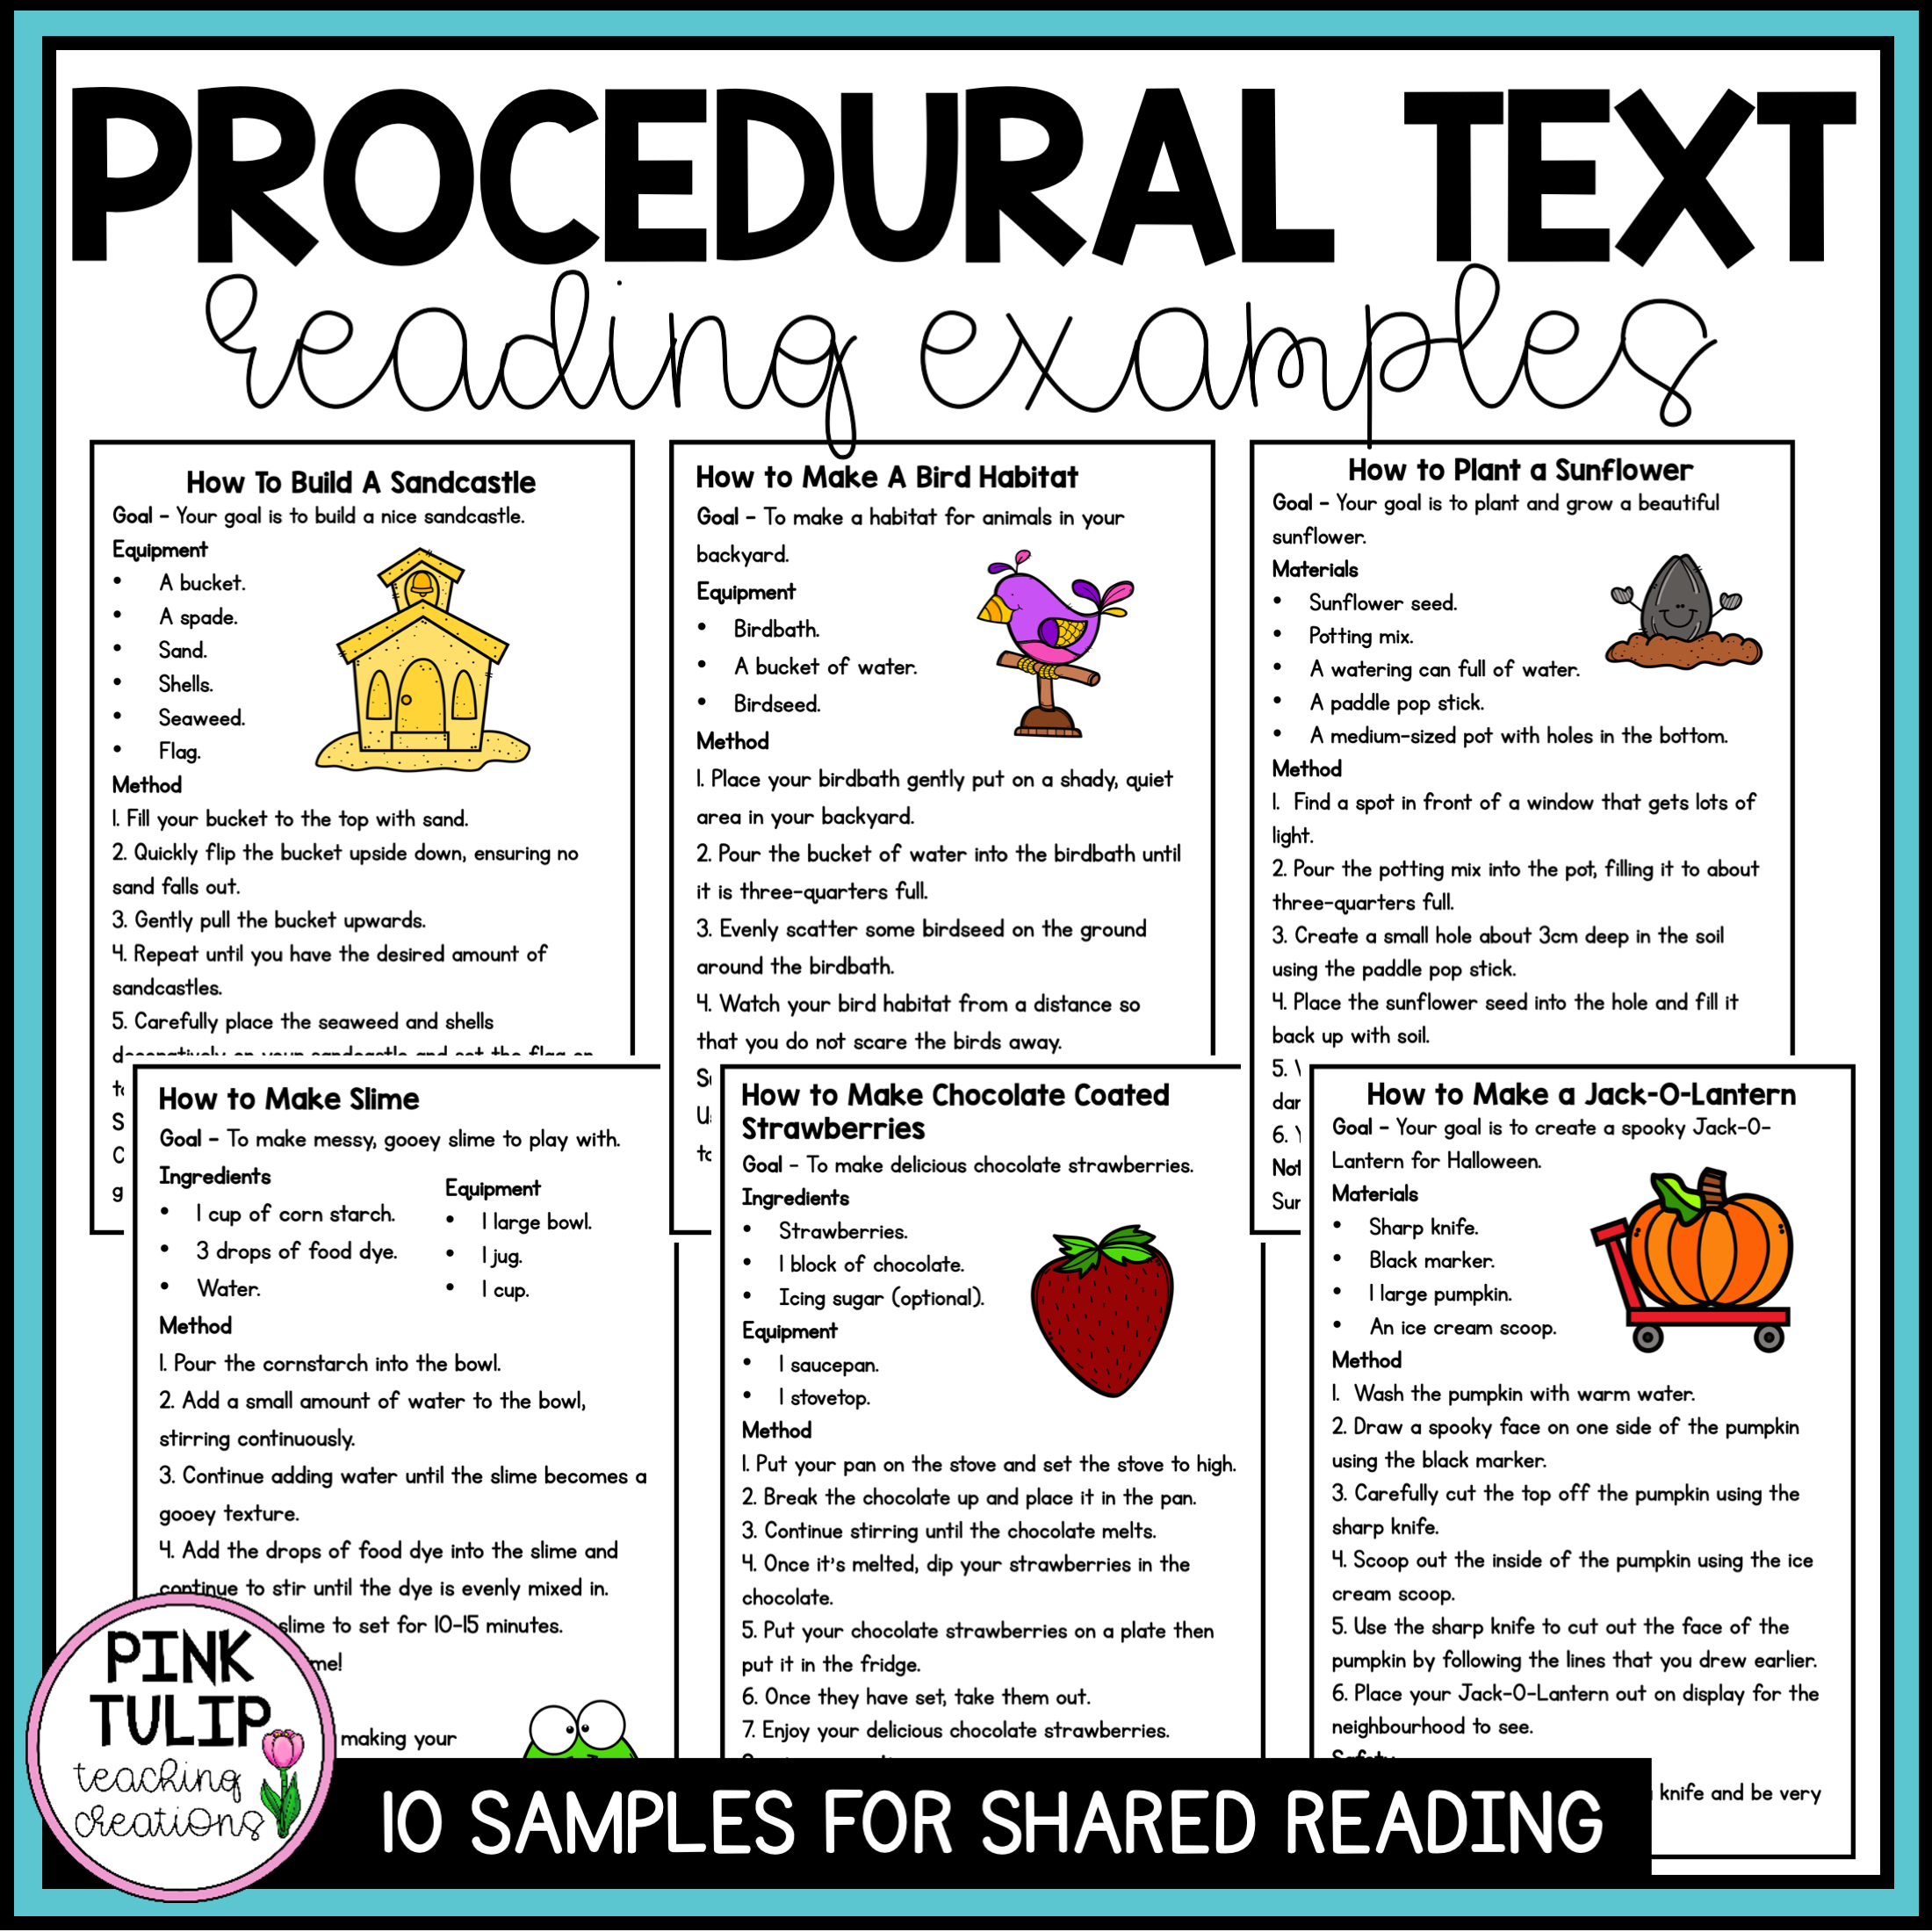 small resolution of Procedural Text Examples - 10 Reading Samples   Procedural text